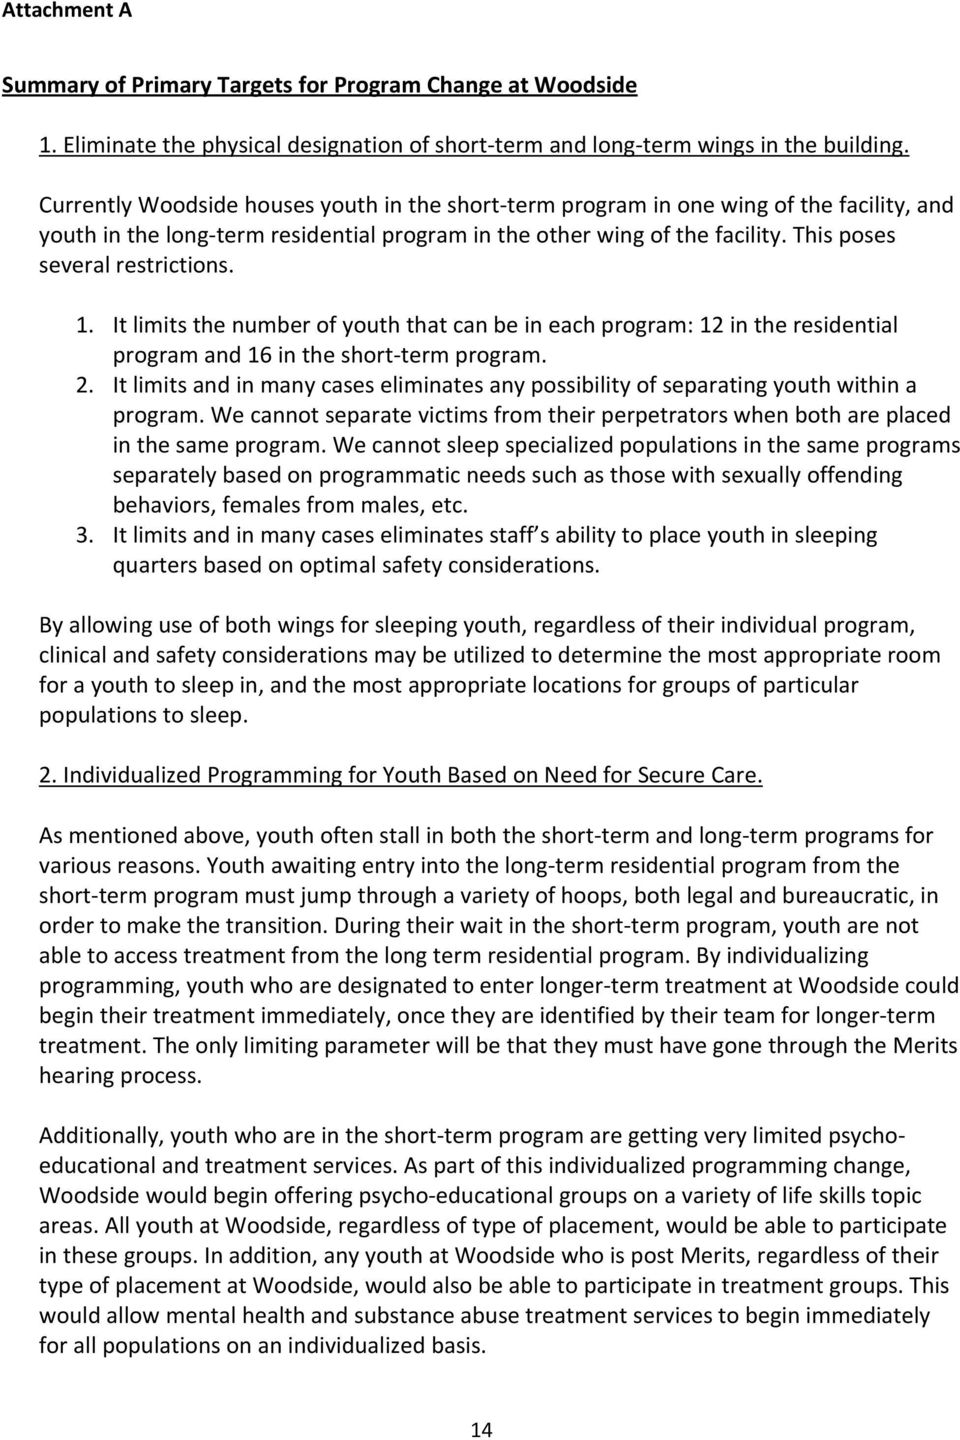 This poses several restrictions. 1. It limits the number of youth that can be in each program: 12 in the residential program and 16 in the short term program. 2.